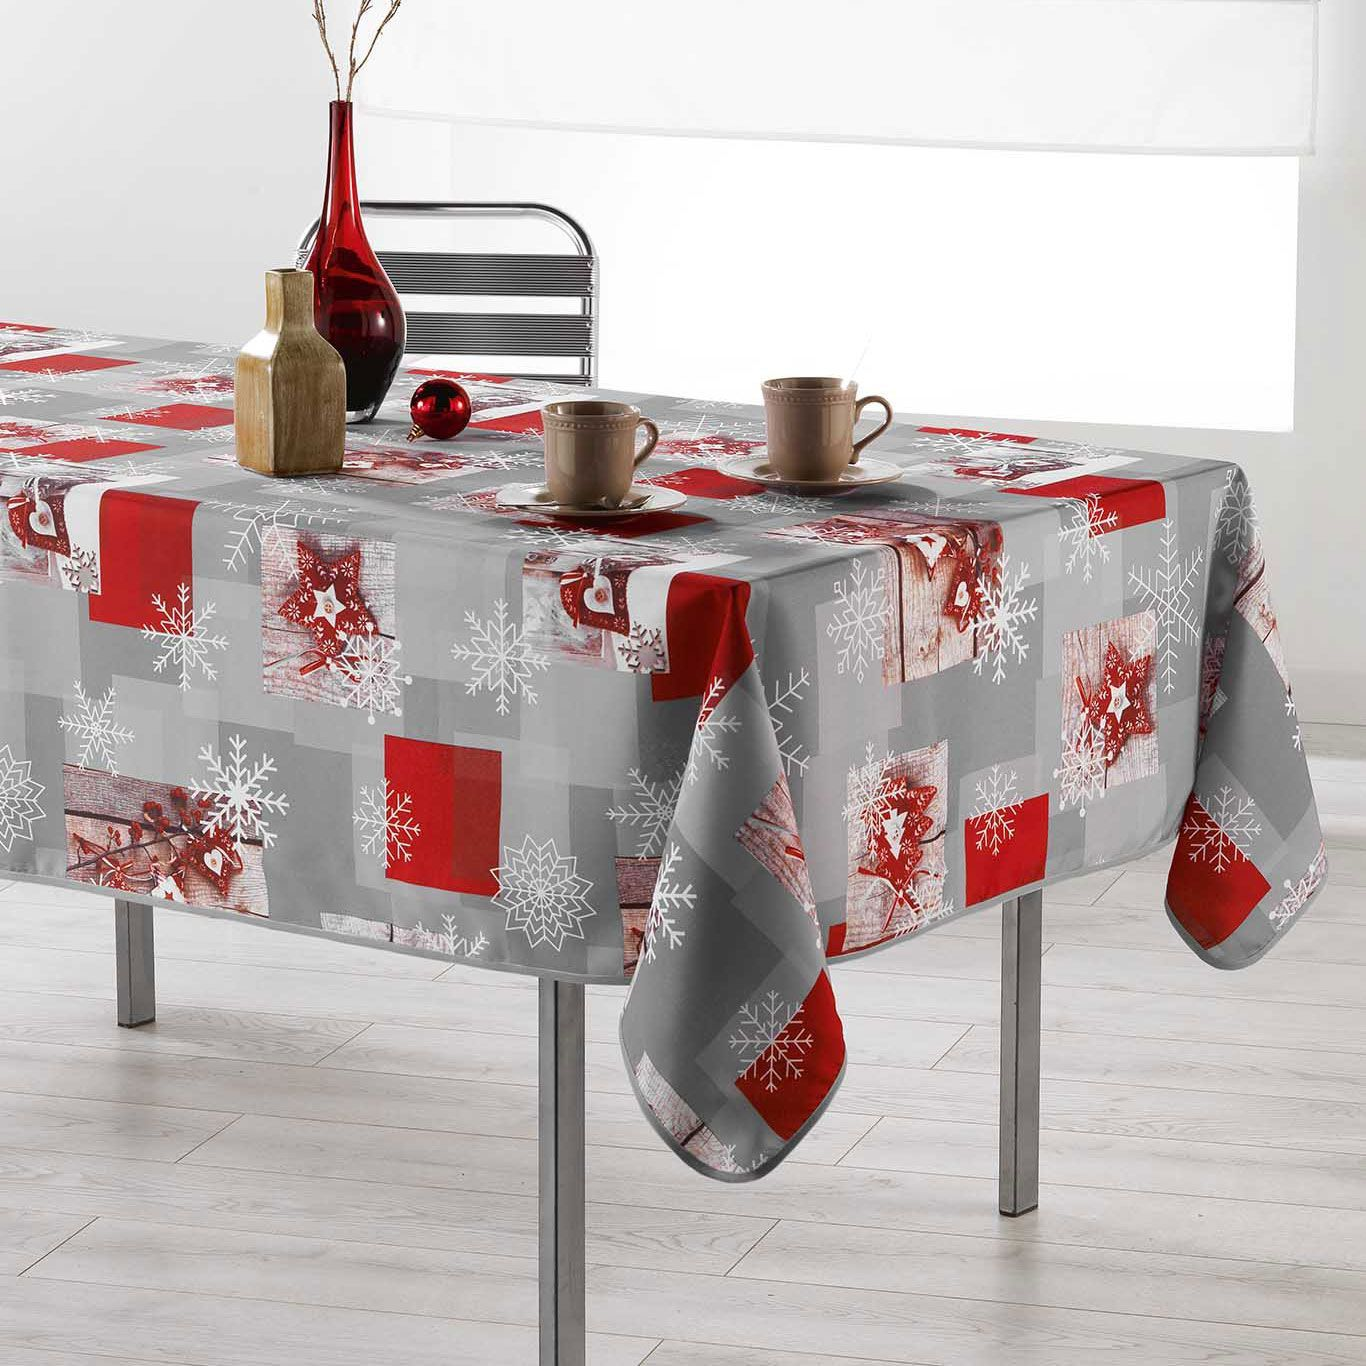 nappe rectangulaire l300 cm coldy rouge linge de table eminza. Black Bedroom Furniture Sets. Home Design Ideas